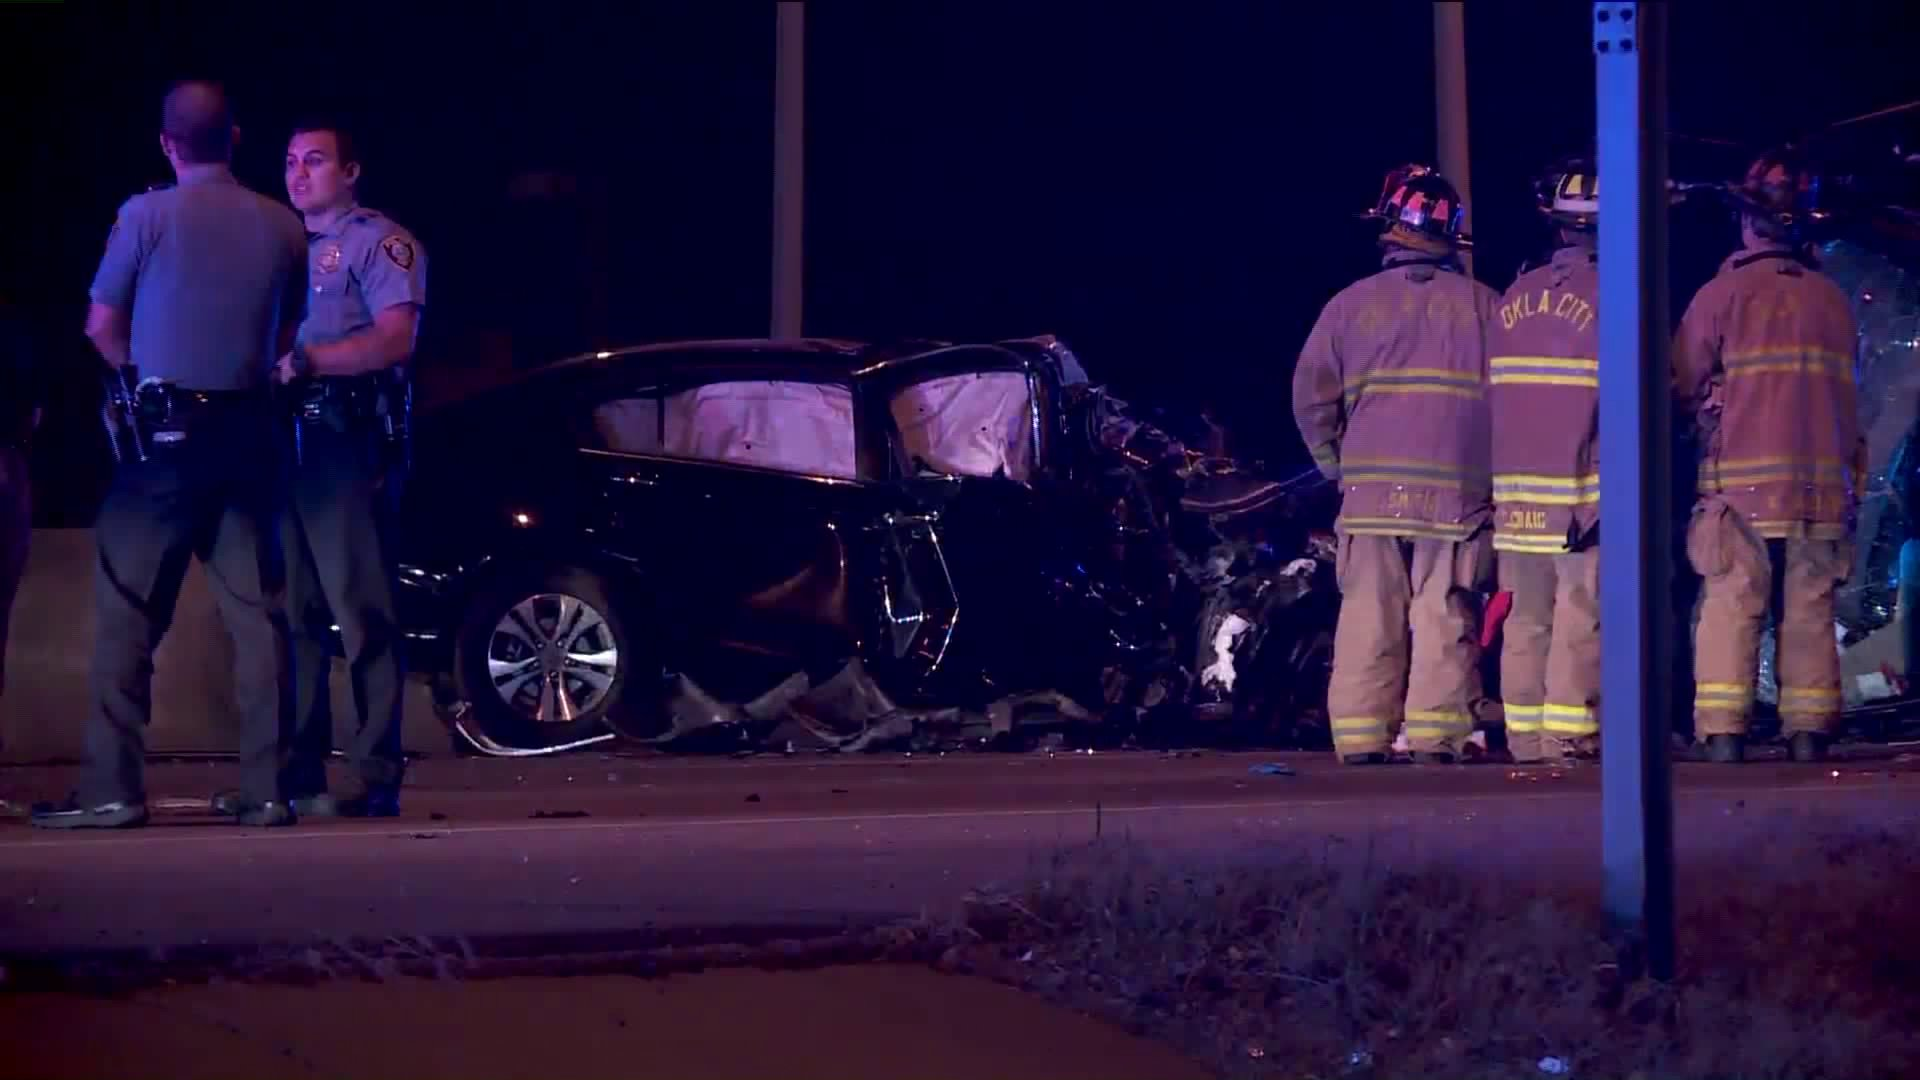 Victim who was in the black car was pronounced dead at the scene.